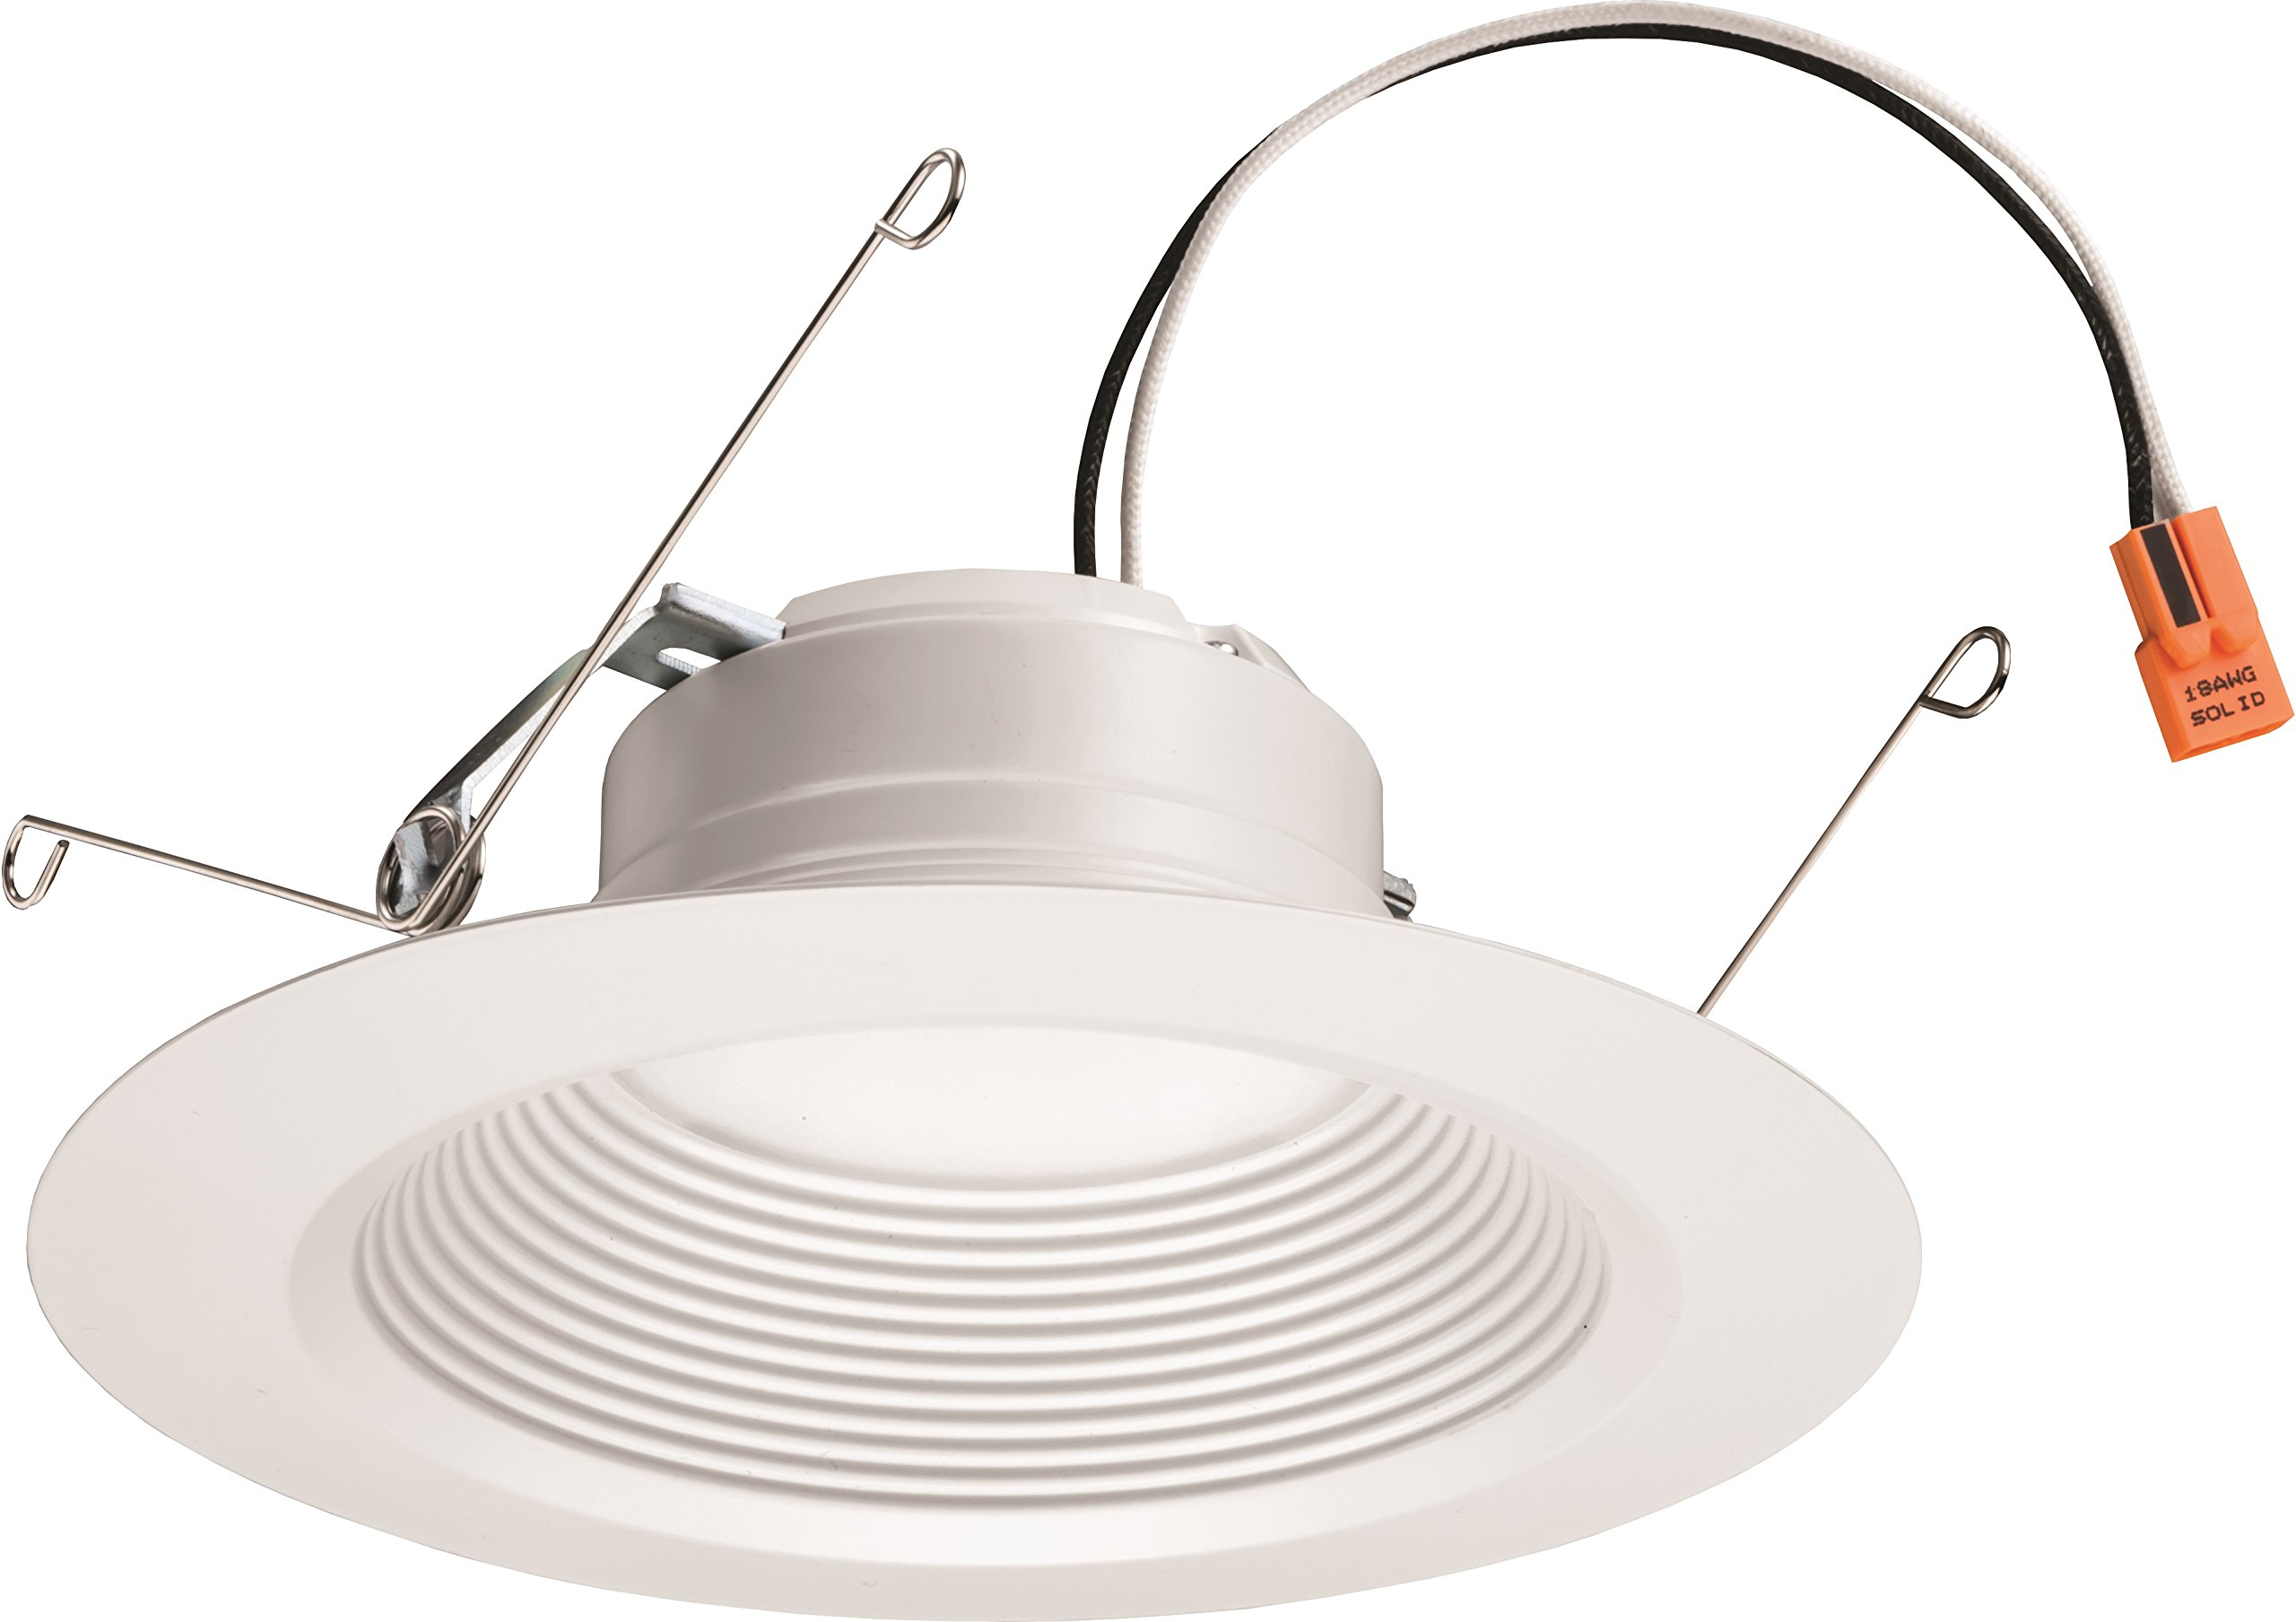 Lithonia Lighting 5/6 Inch White Retrofit LED Recessed Downlight, 12W Dimmable with 5000K Day White, 825 Lumens